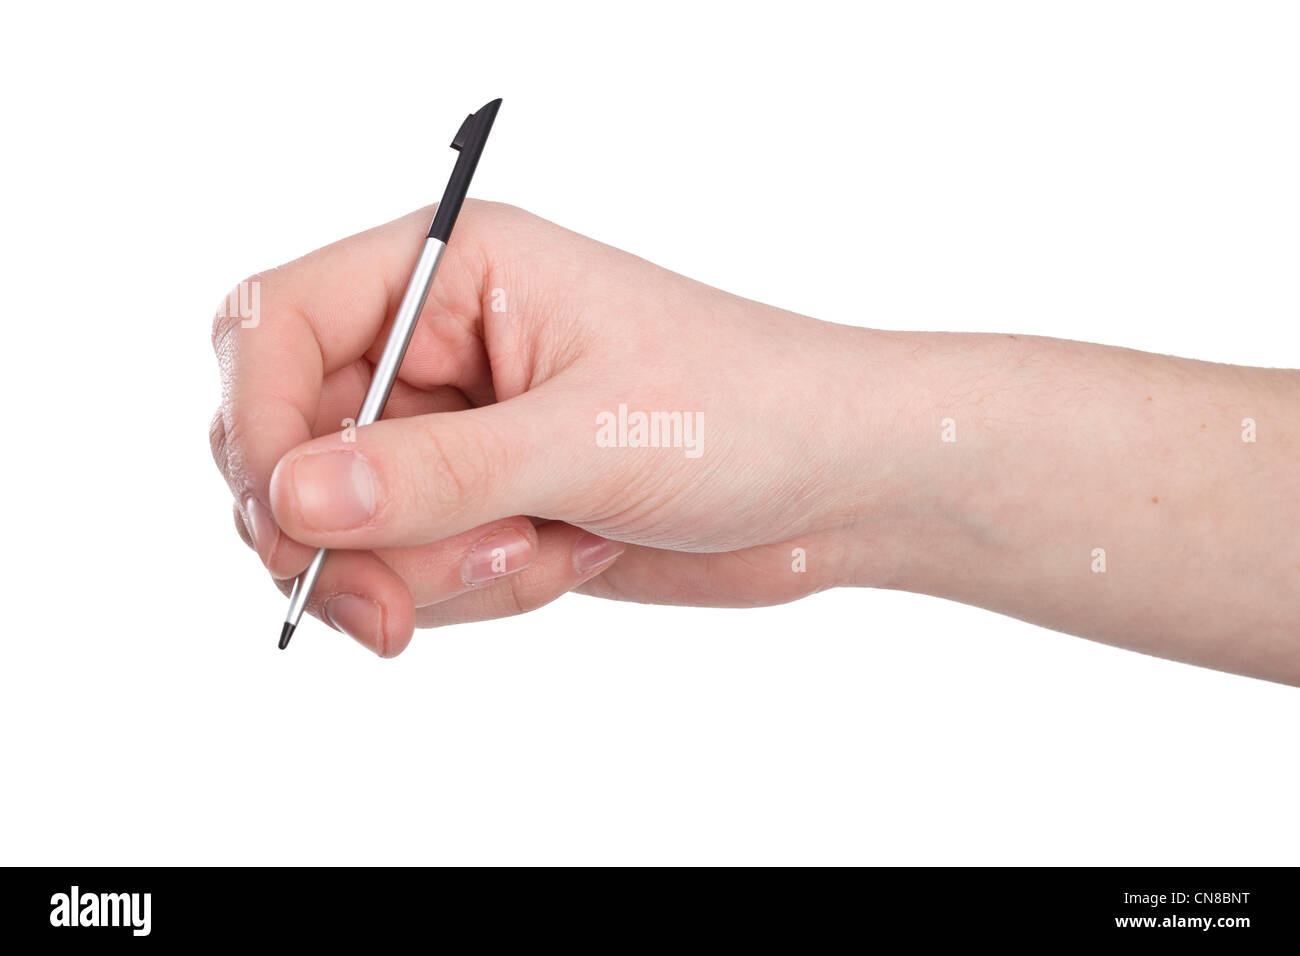 pda stylus in hand isolated on white background - Stock Image